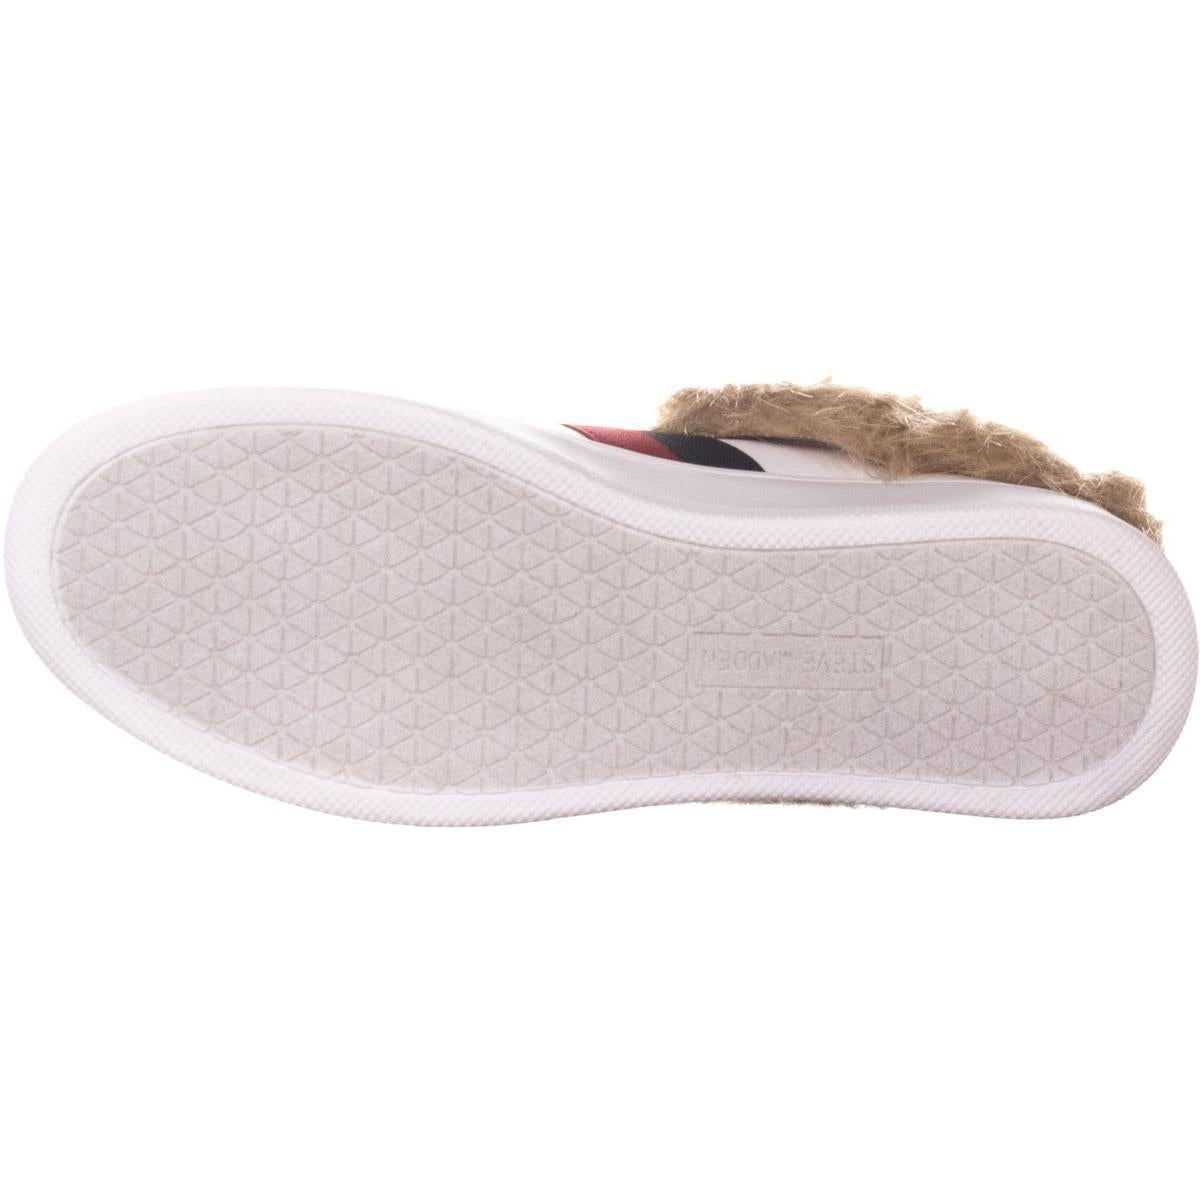 bed991b2e Shop Steve Madden Belle Low To Sneakers, White Multi Fur - On Sale - Free  Shipping Today - Overstock - 26063372